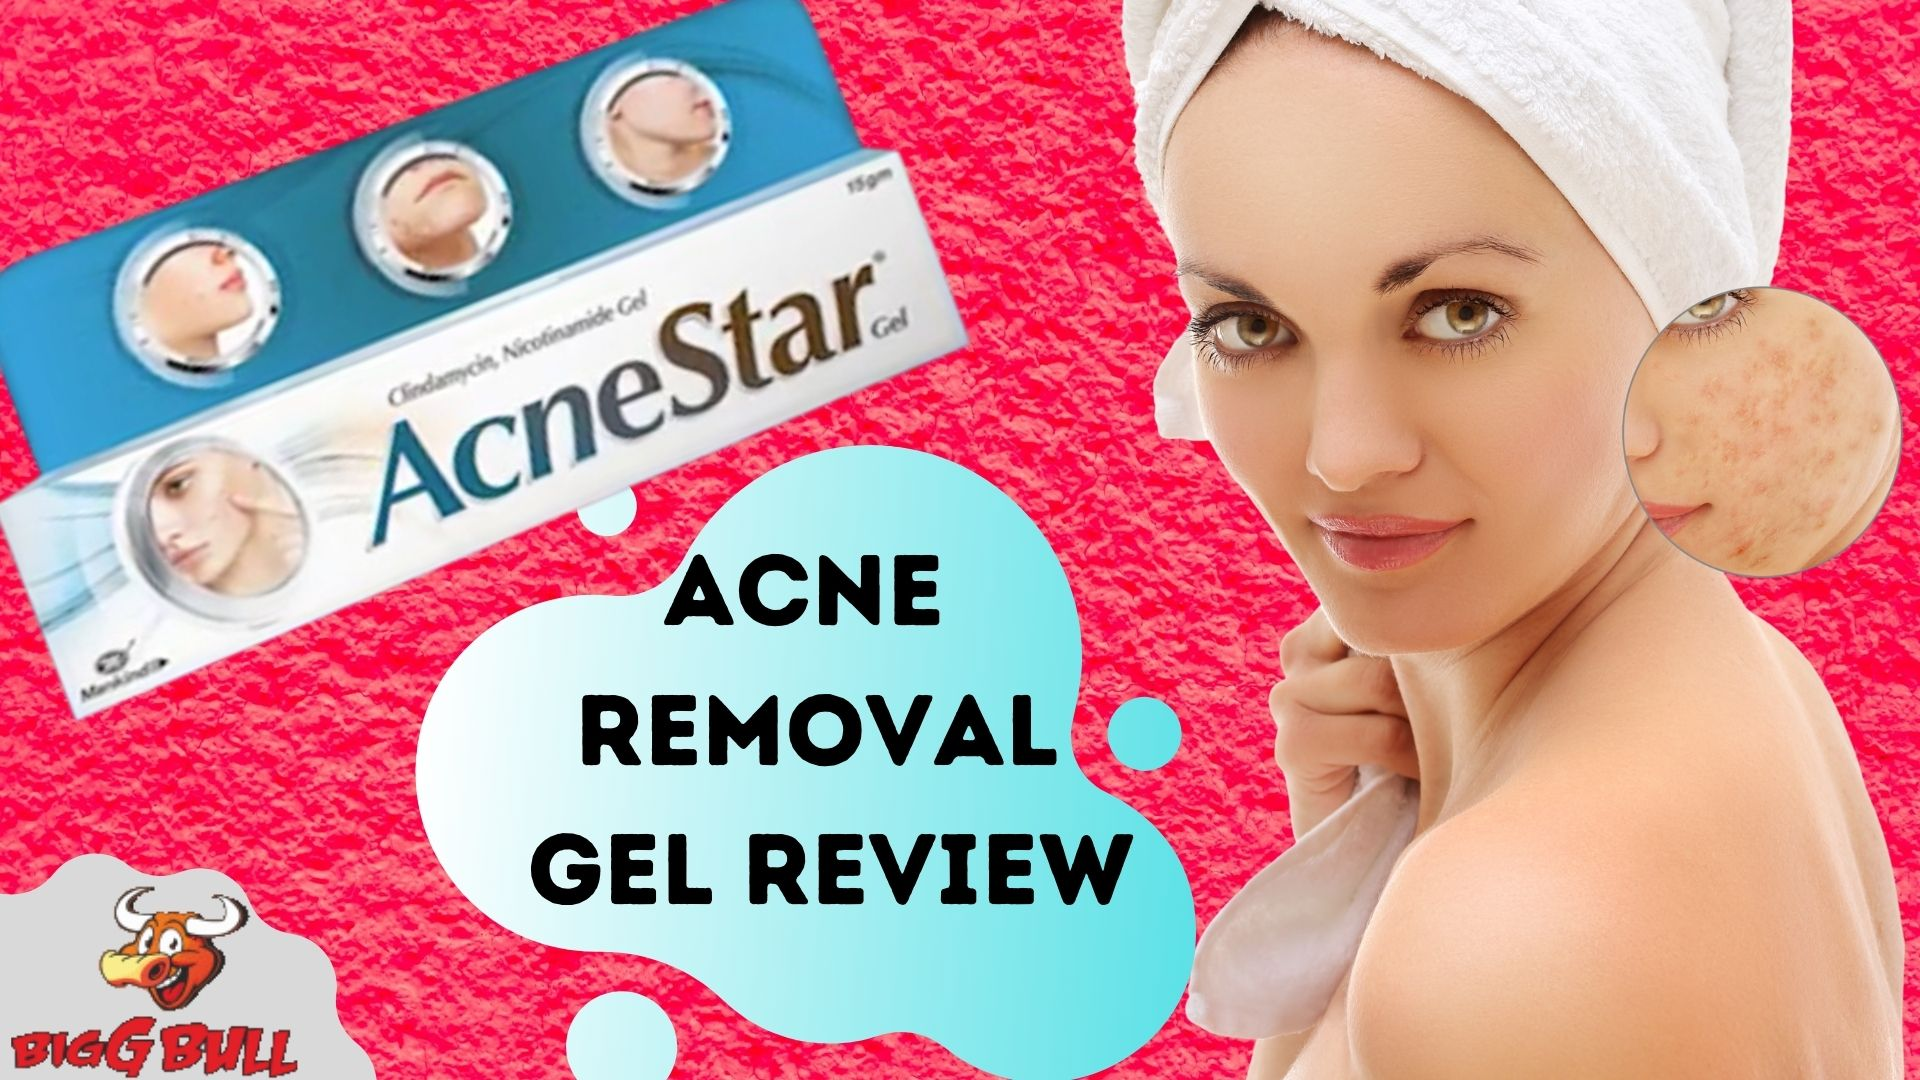 Mankind Acnestar Removal Gel Review